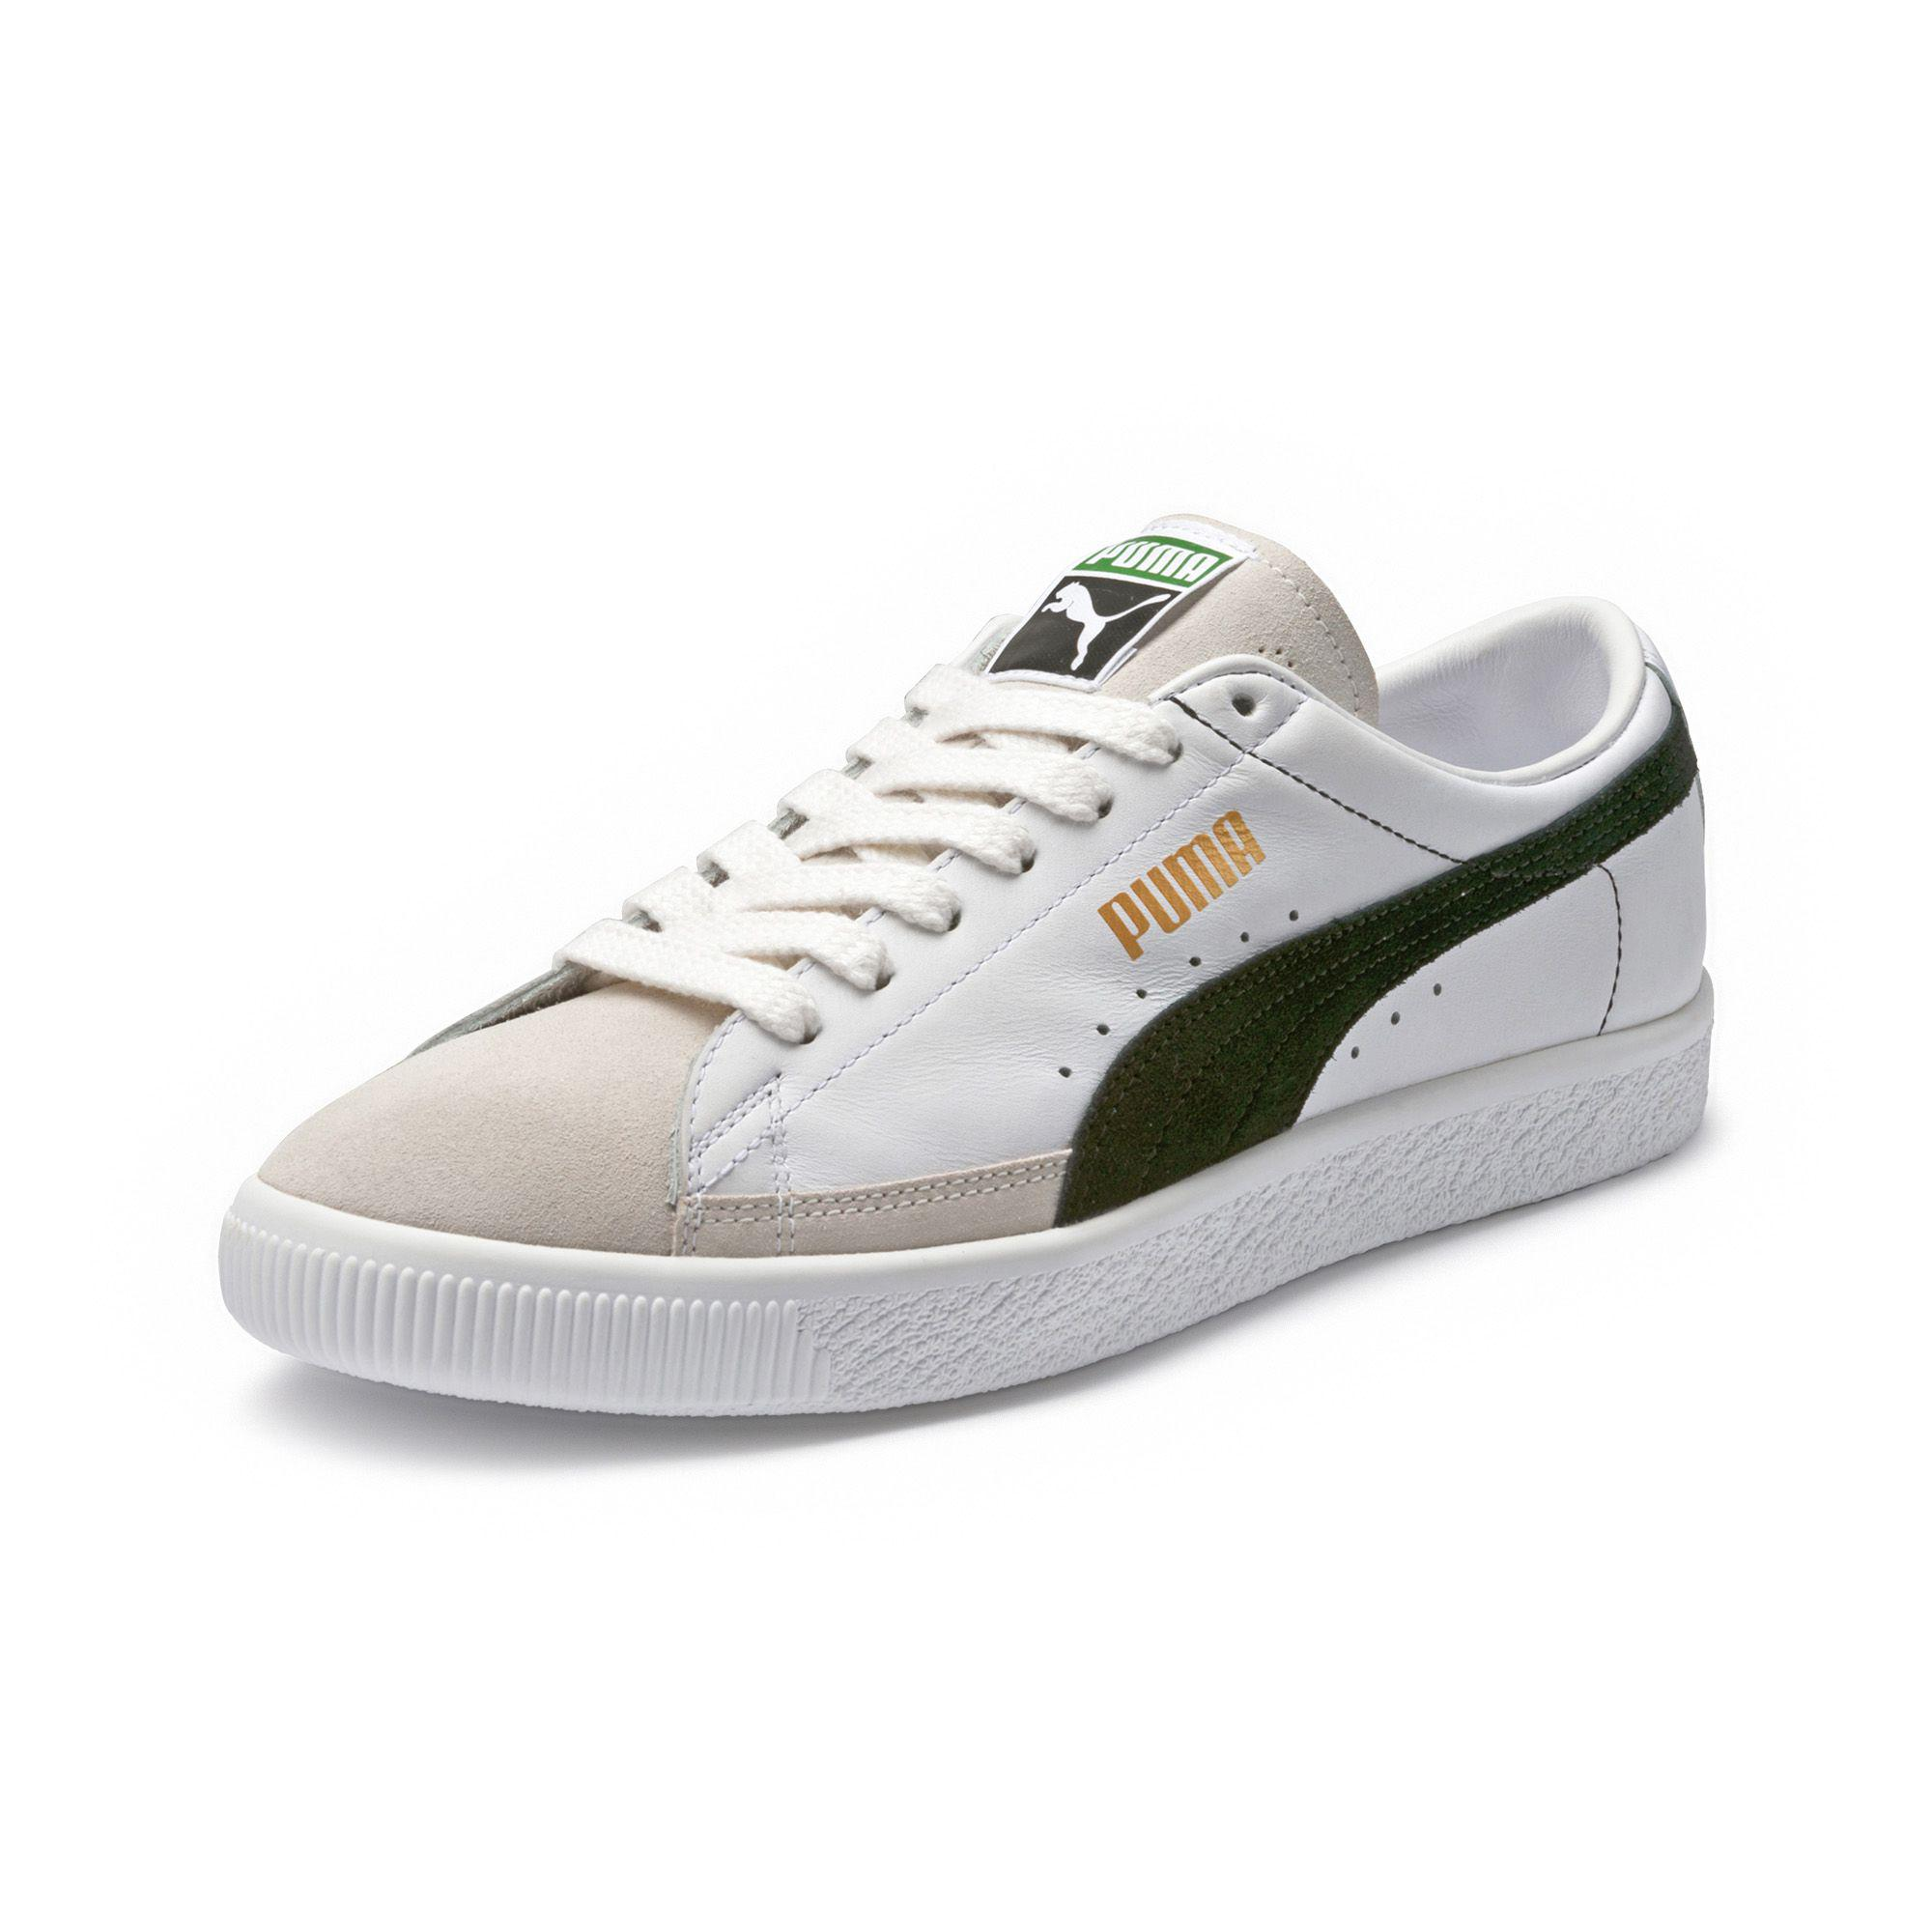 PUMA Leather Basket 90680 Sneakers in